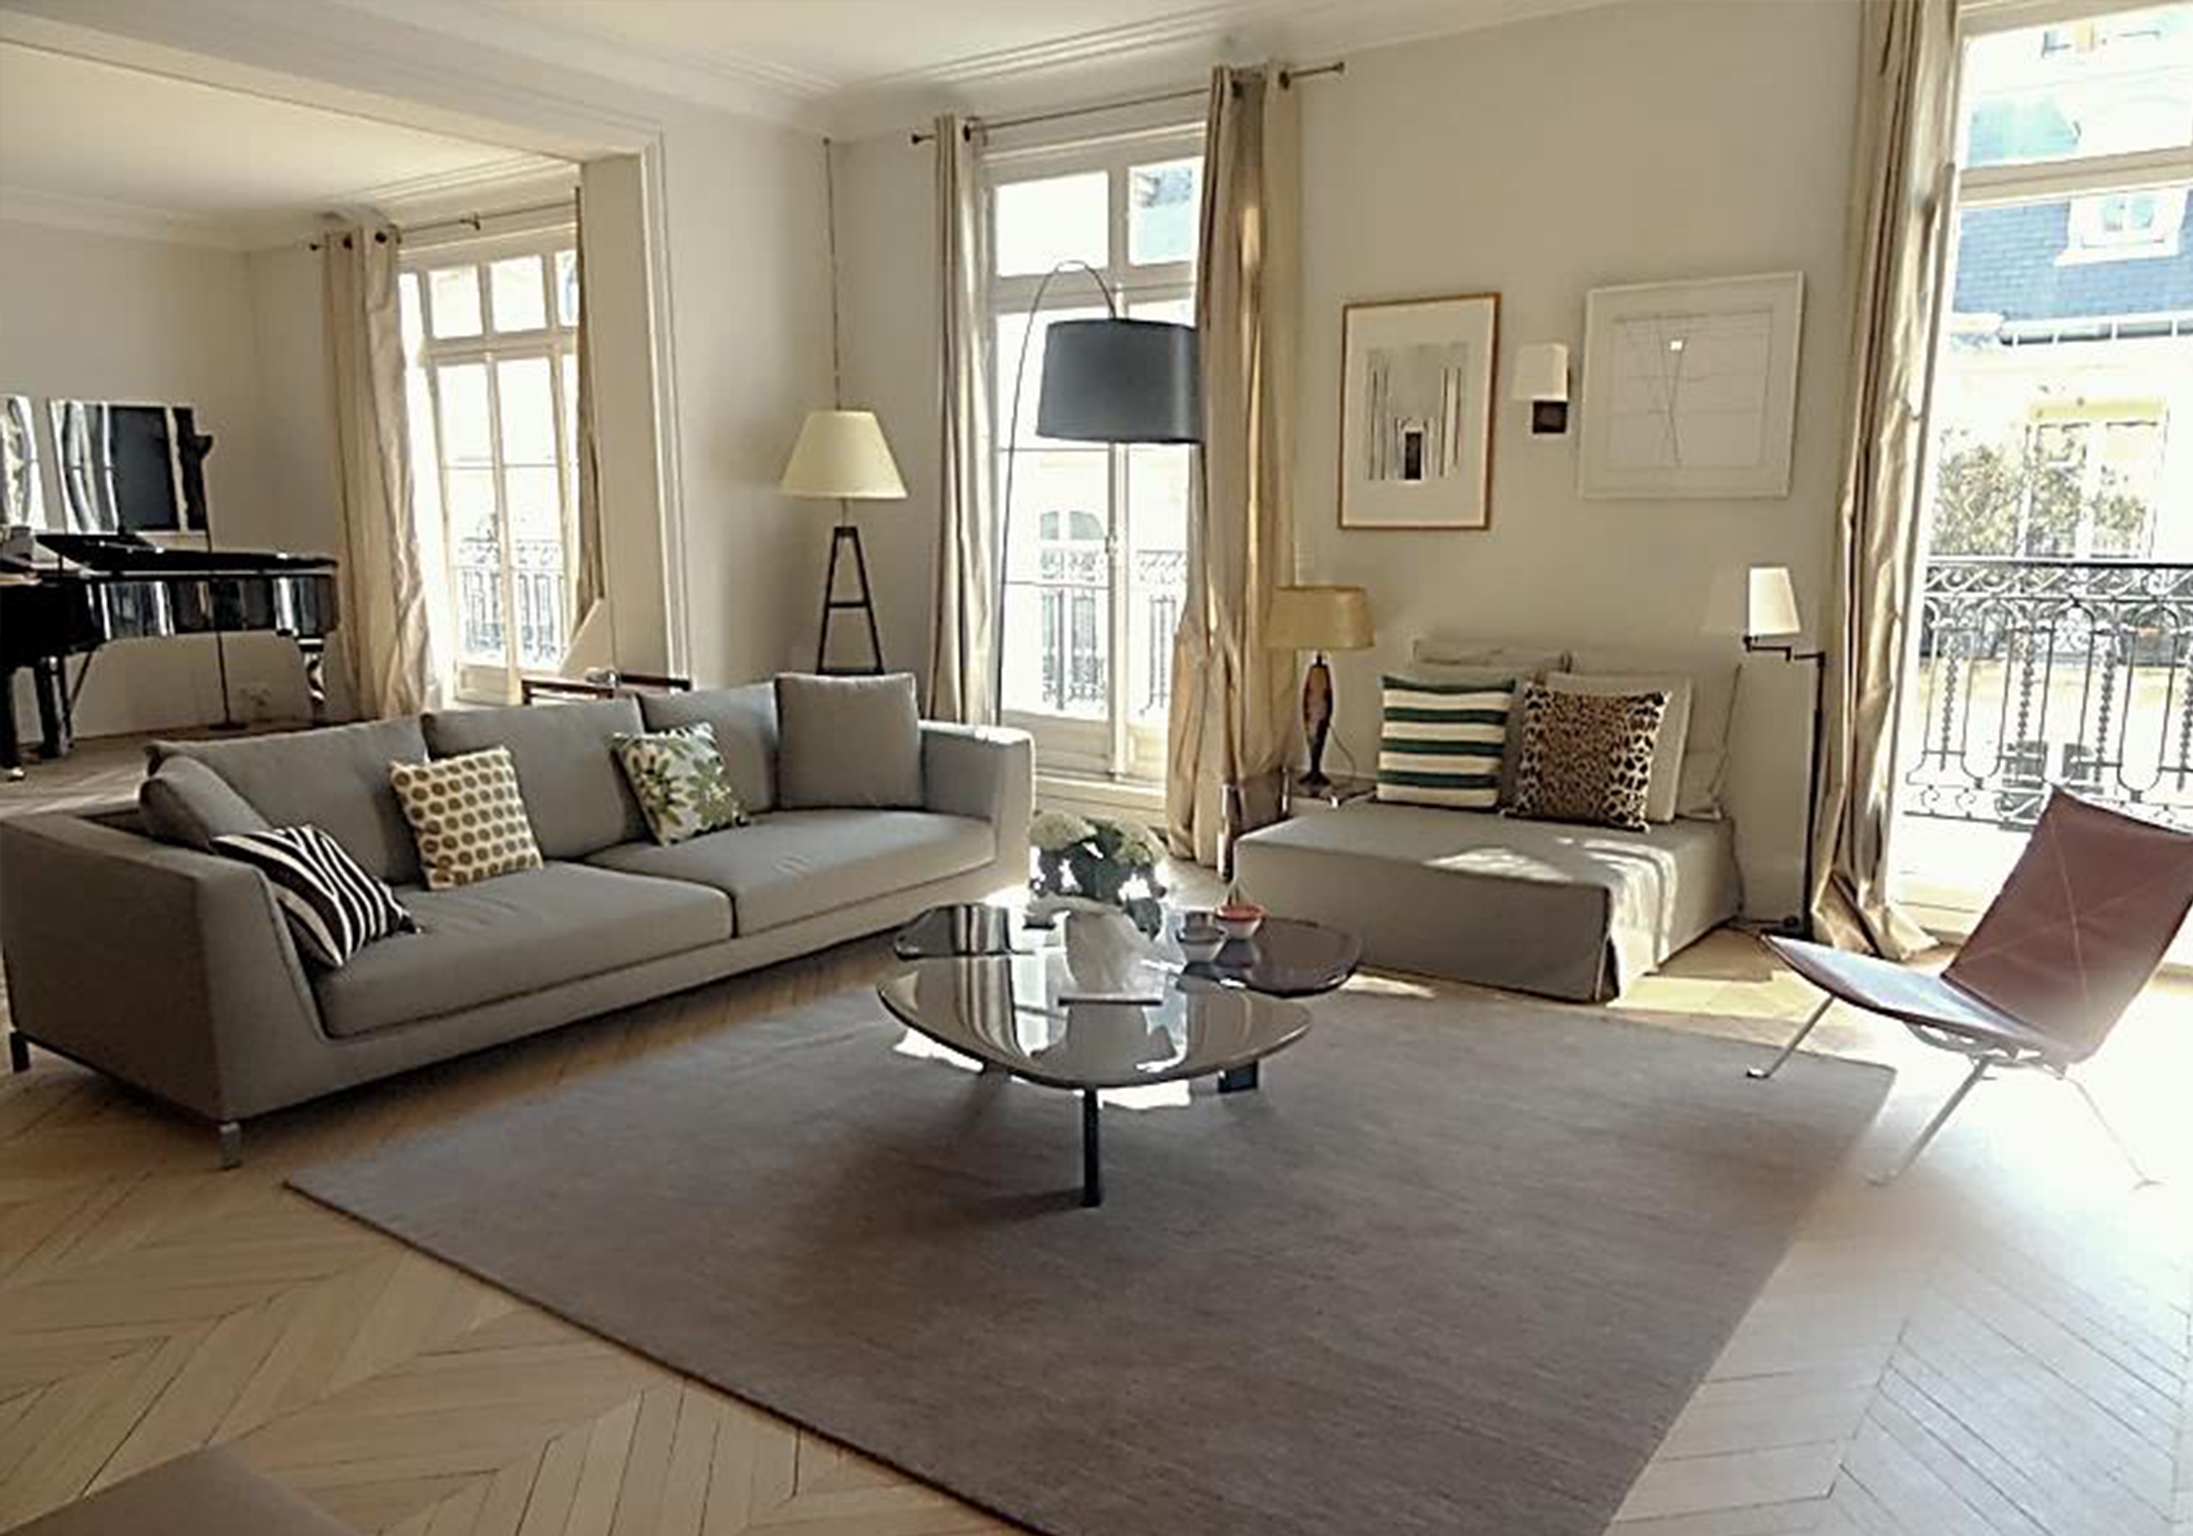 Interieur singulier appartement paris 16 for Meuble 5 etoile tunisie